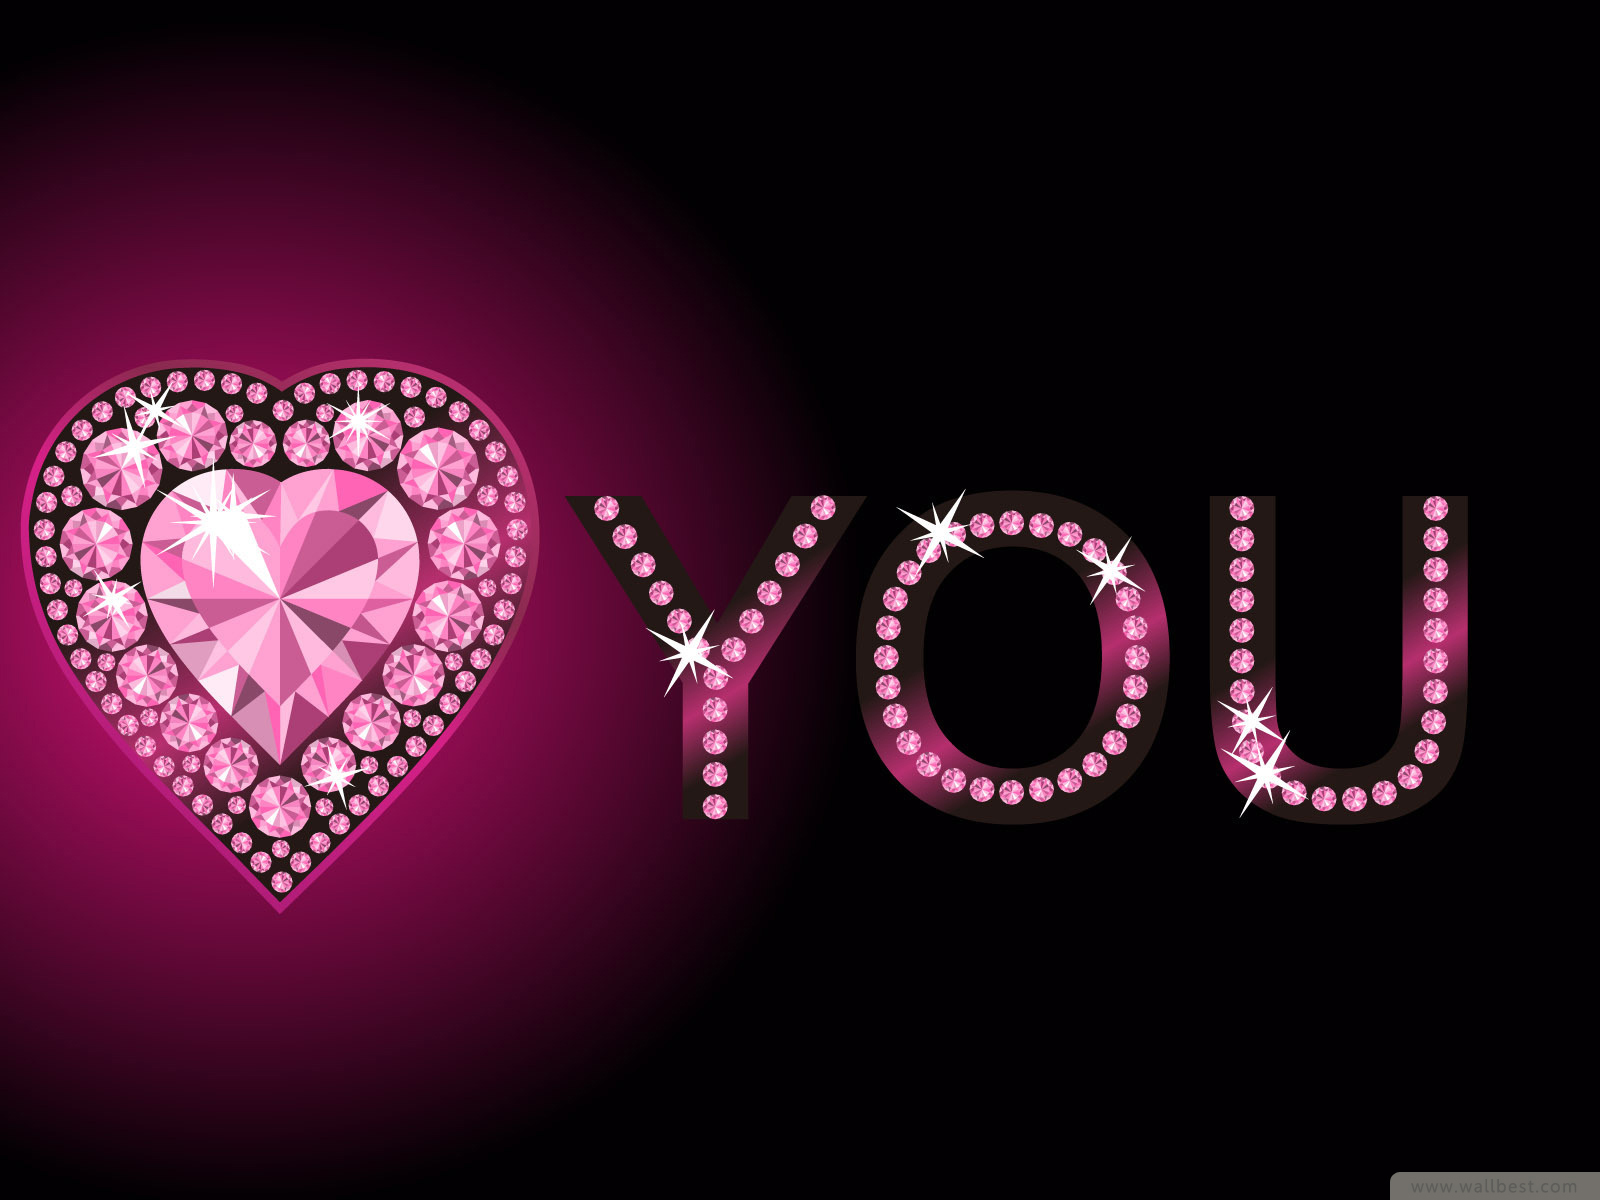 I Love You (ILU) Pictures, Photos and HD wallpapers 2016